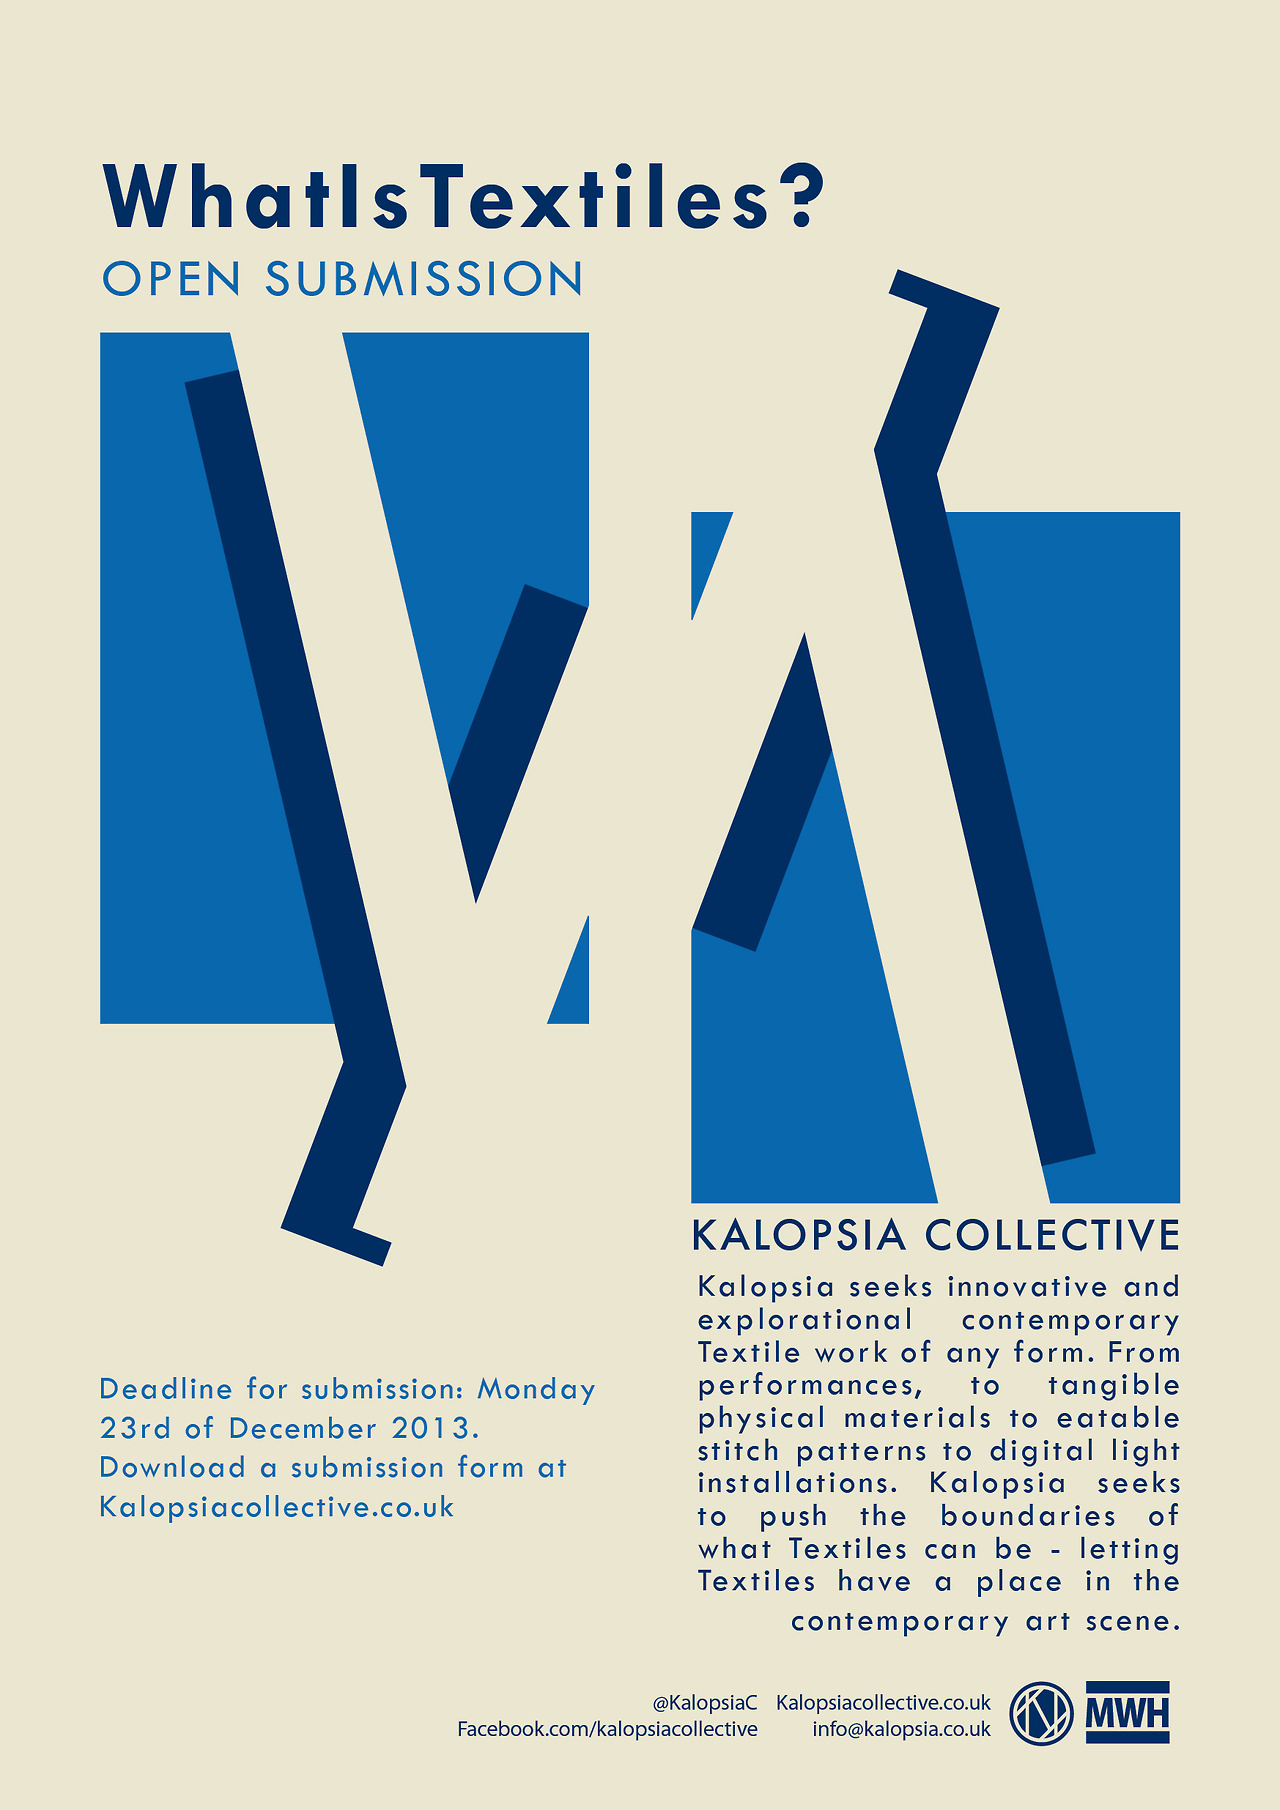 Kalopsia Collective - What is Textiles? Open Call